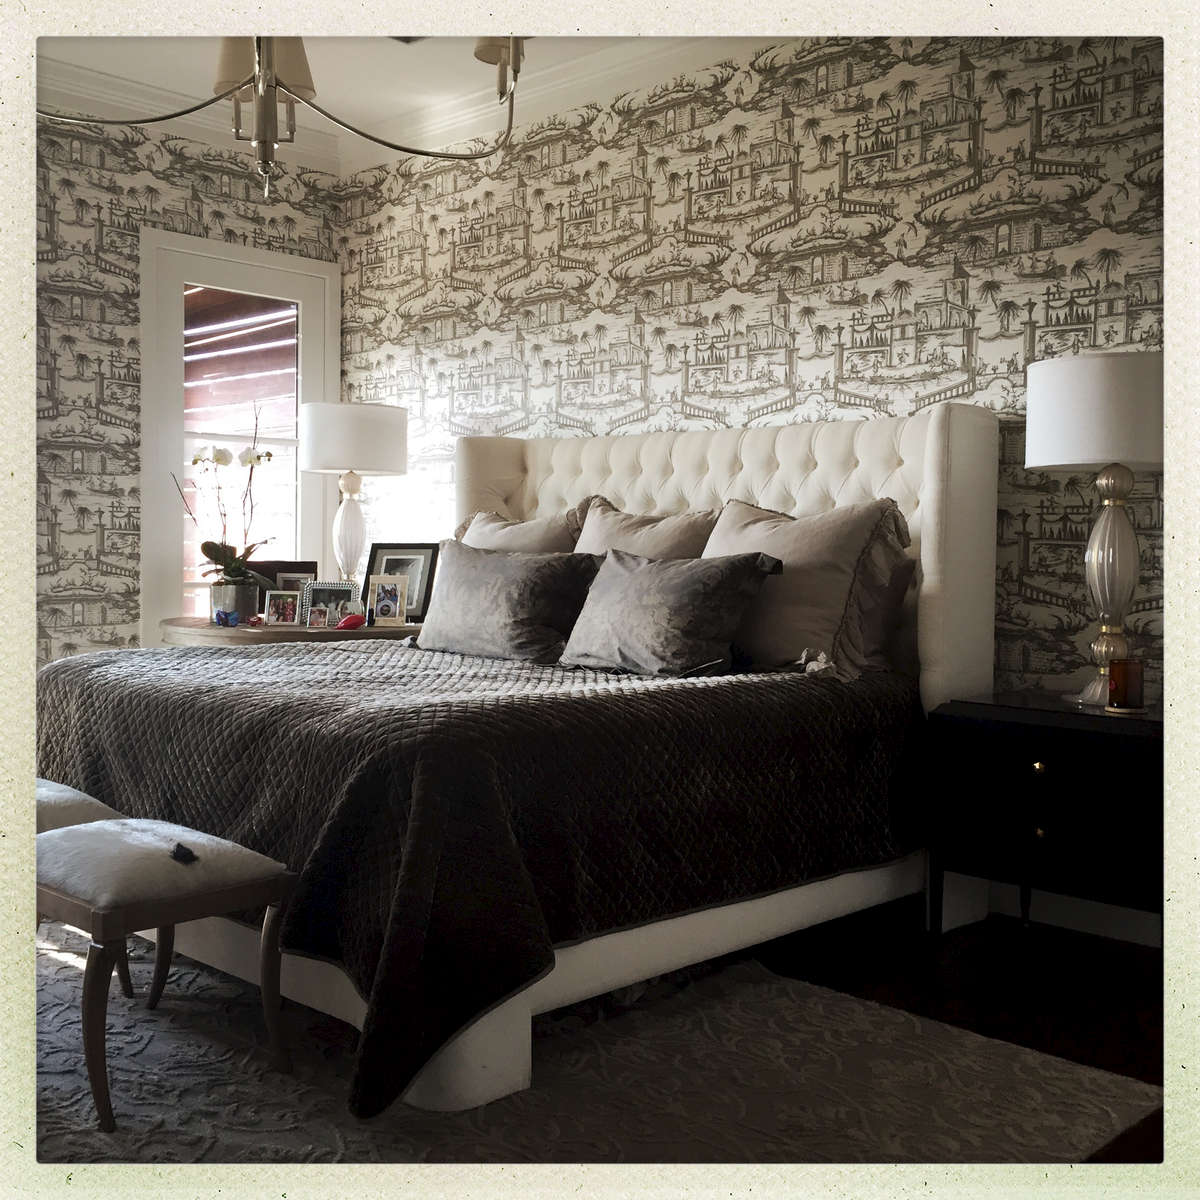 Silvered French wallpaper from France, the Harlowe bed, silk velvet and linen,  goat-skinned benches, and murano lamps...glamourous.